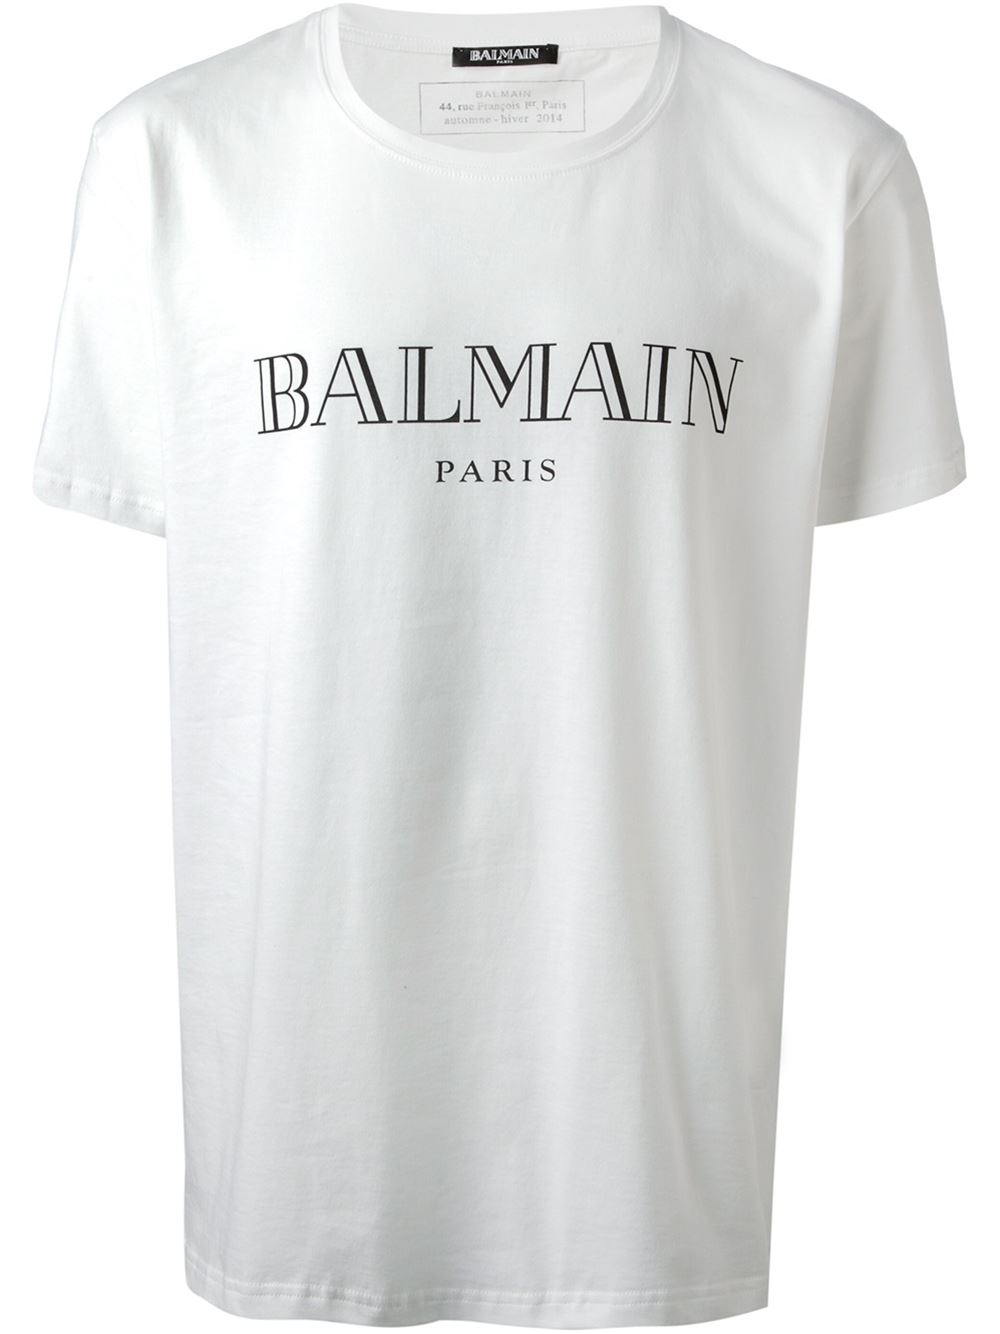 balmain logo print t shirt in white for men lyst. Black Bedroom Furniture Sets. Home Design Ideas